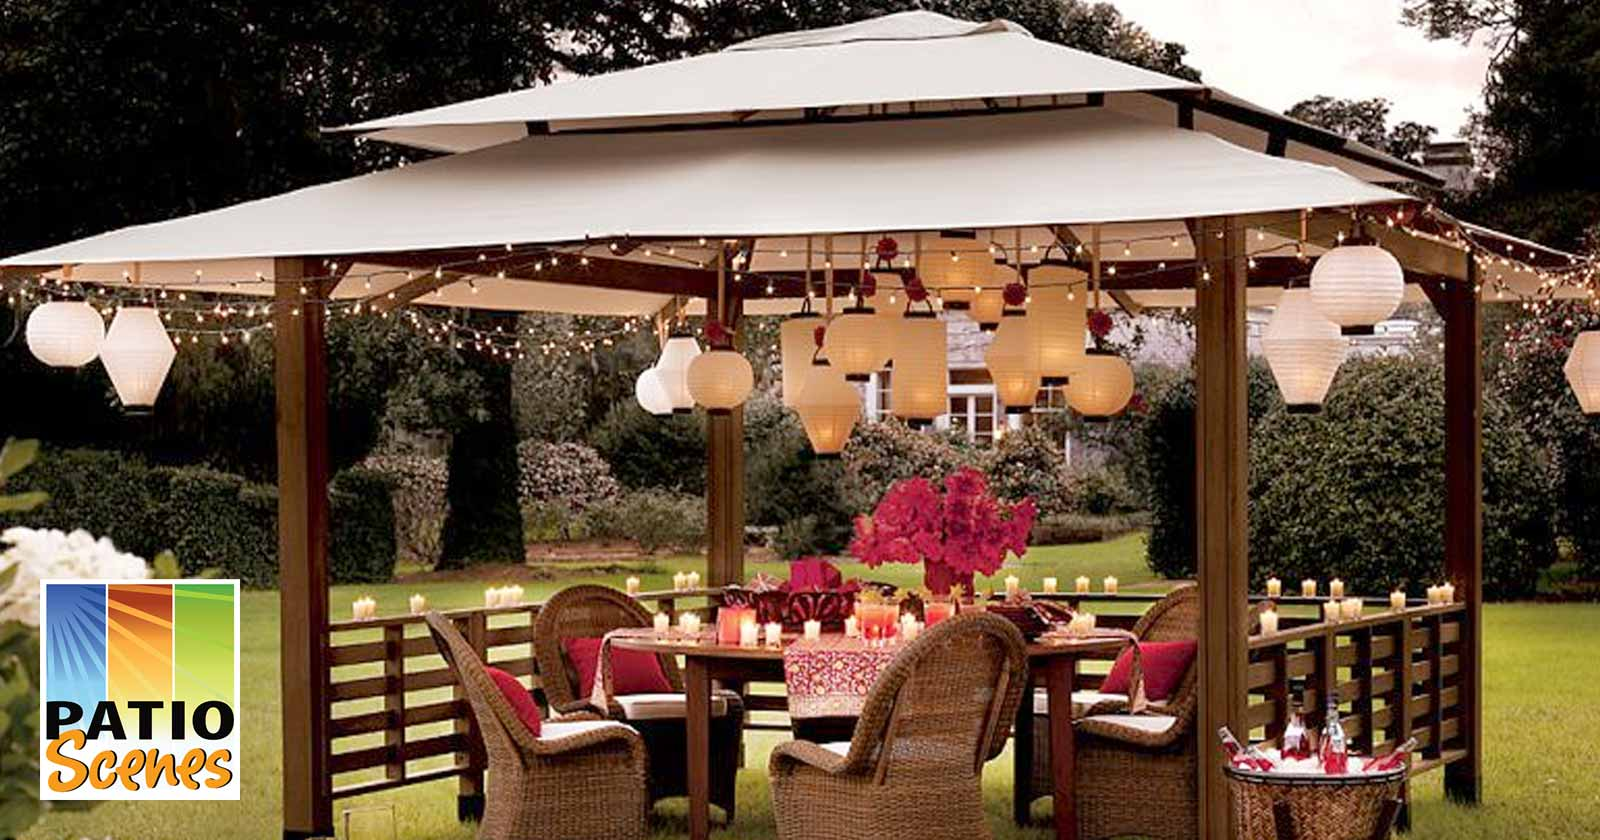 7 Awesome Party Ideas for Your Gazebo